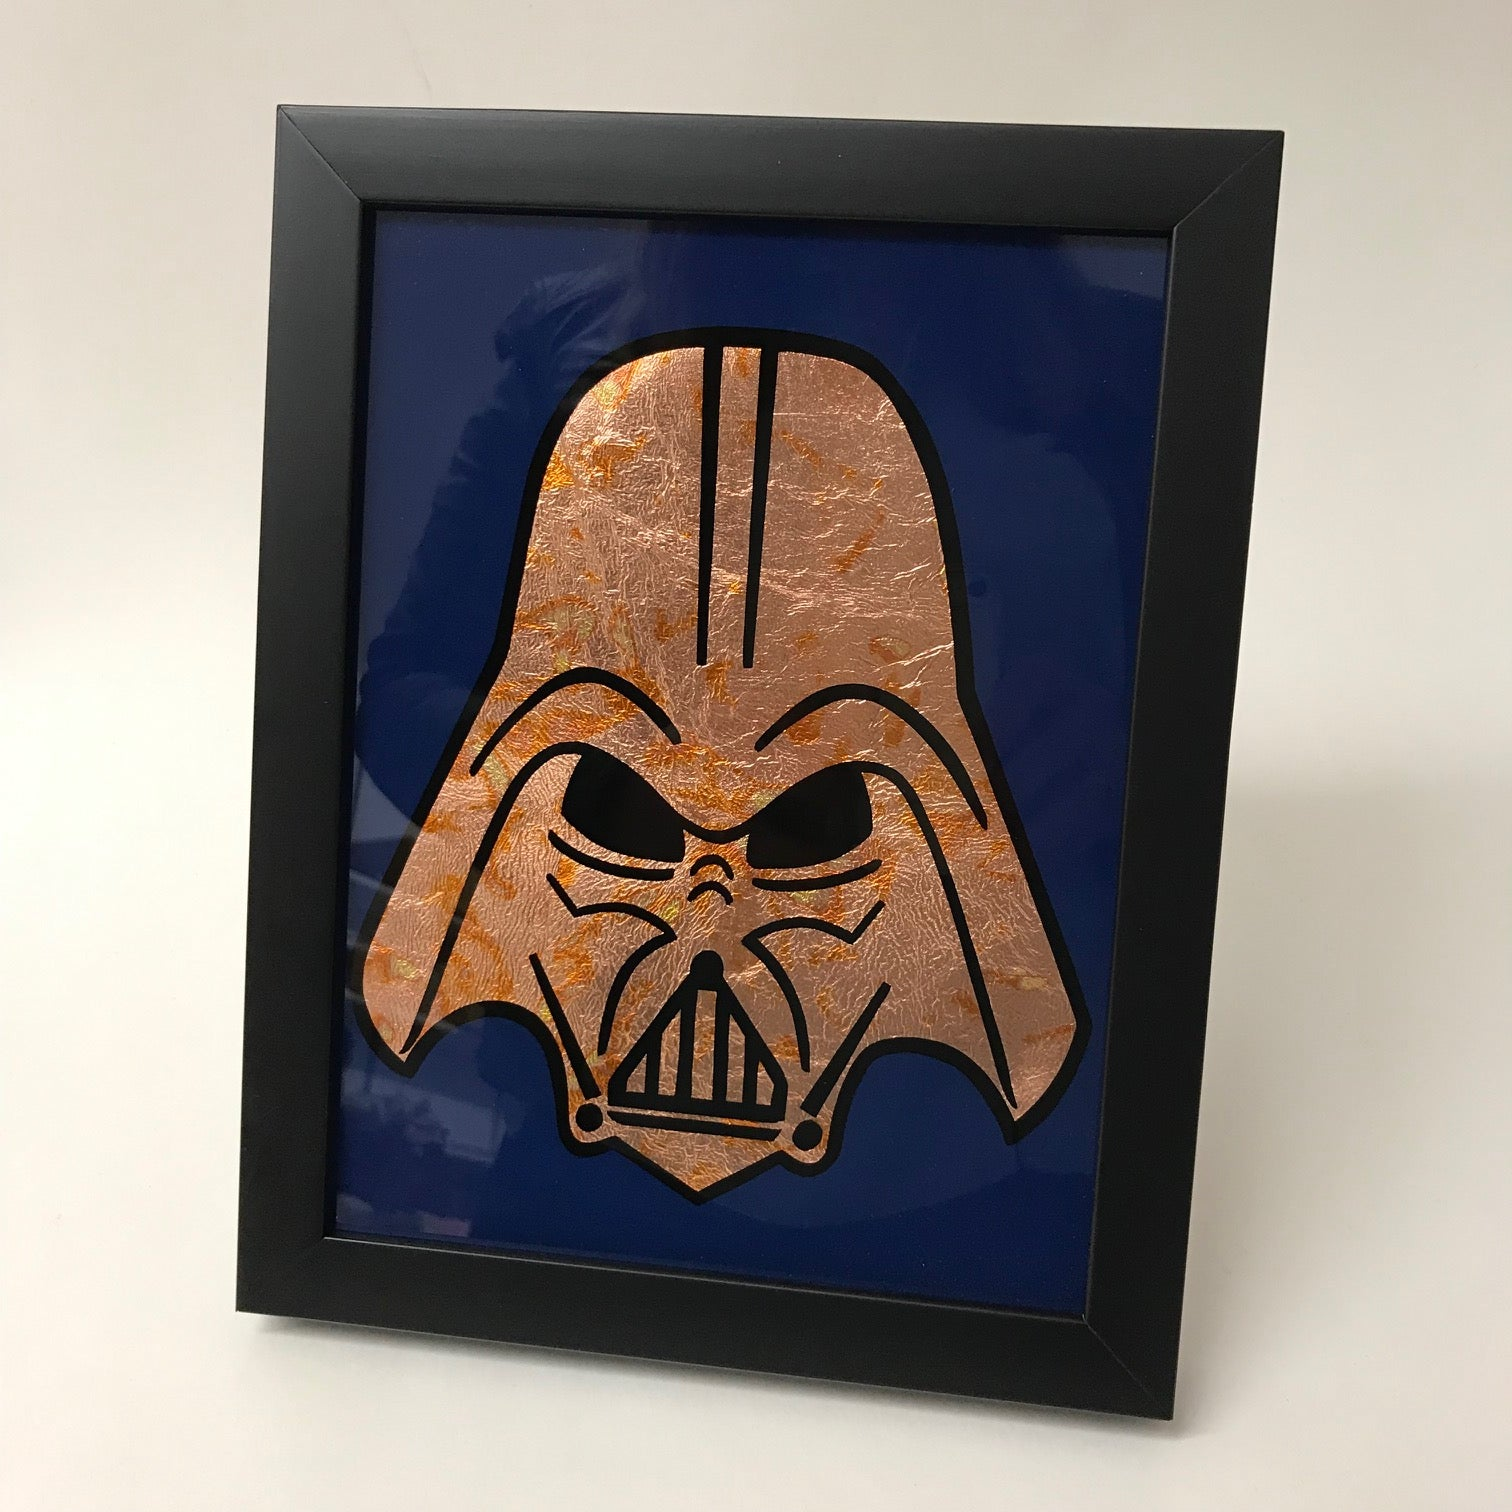 Framed Gilded Copper Darth Vader